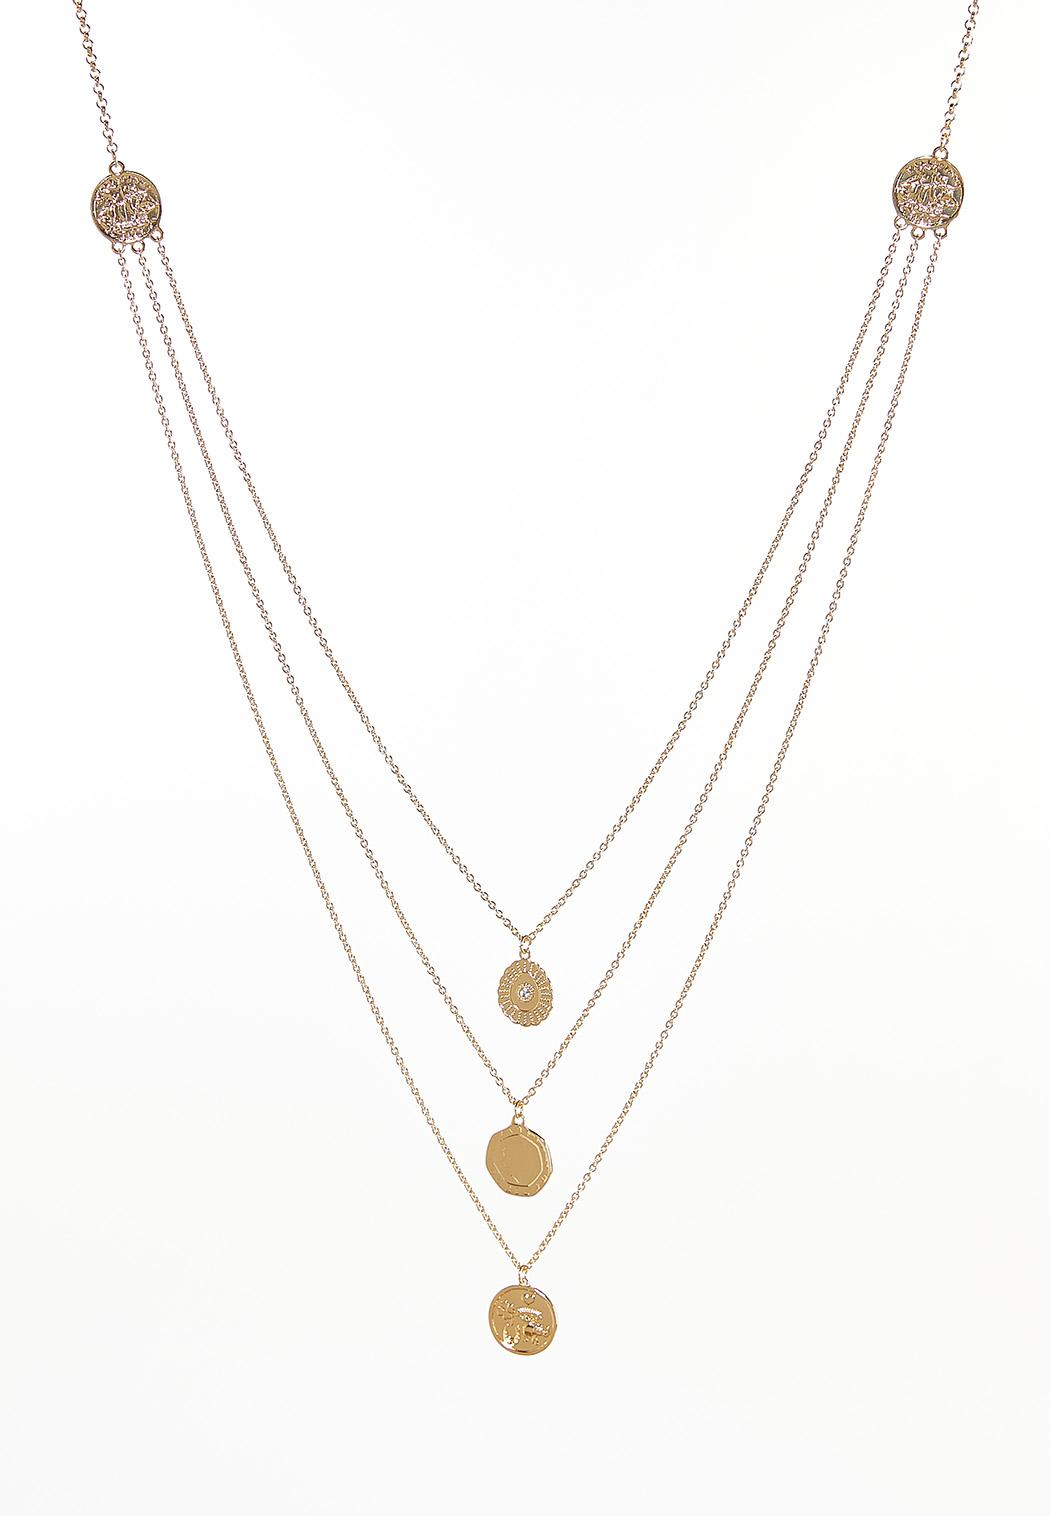 Layered Inspirational Disc Necklace